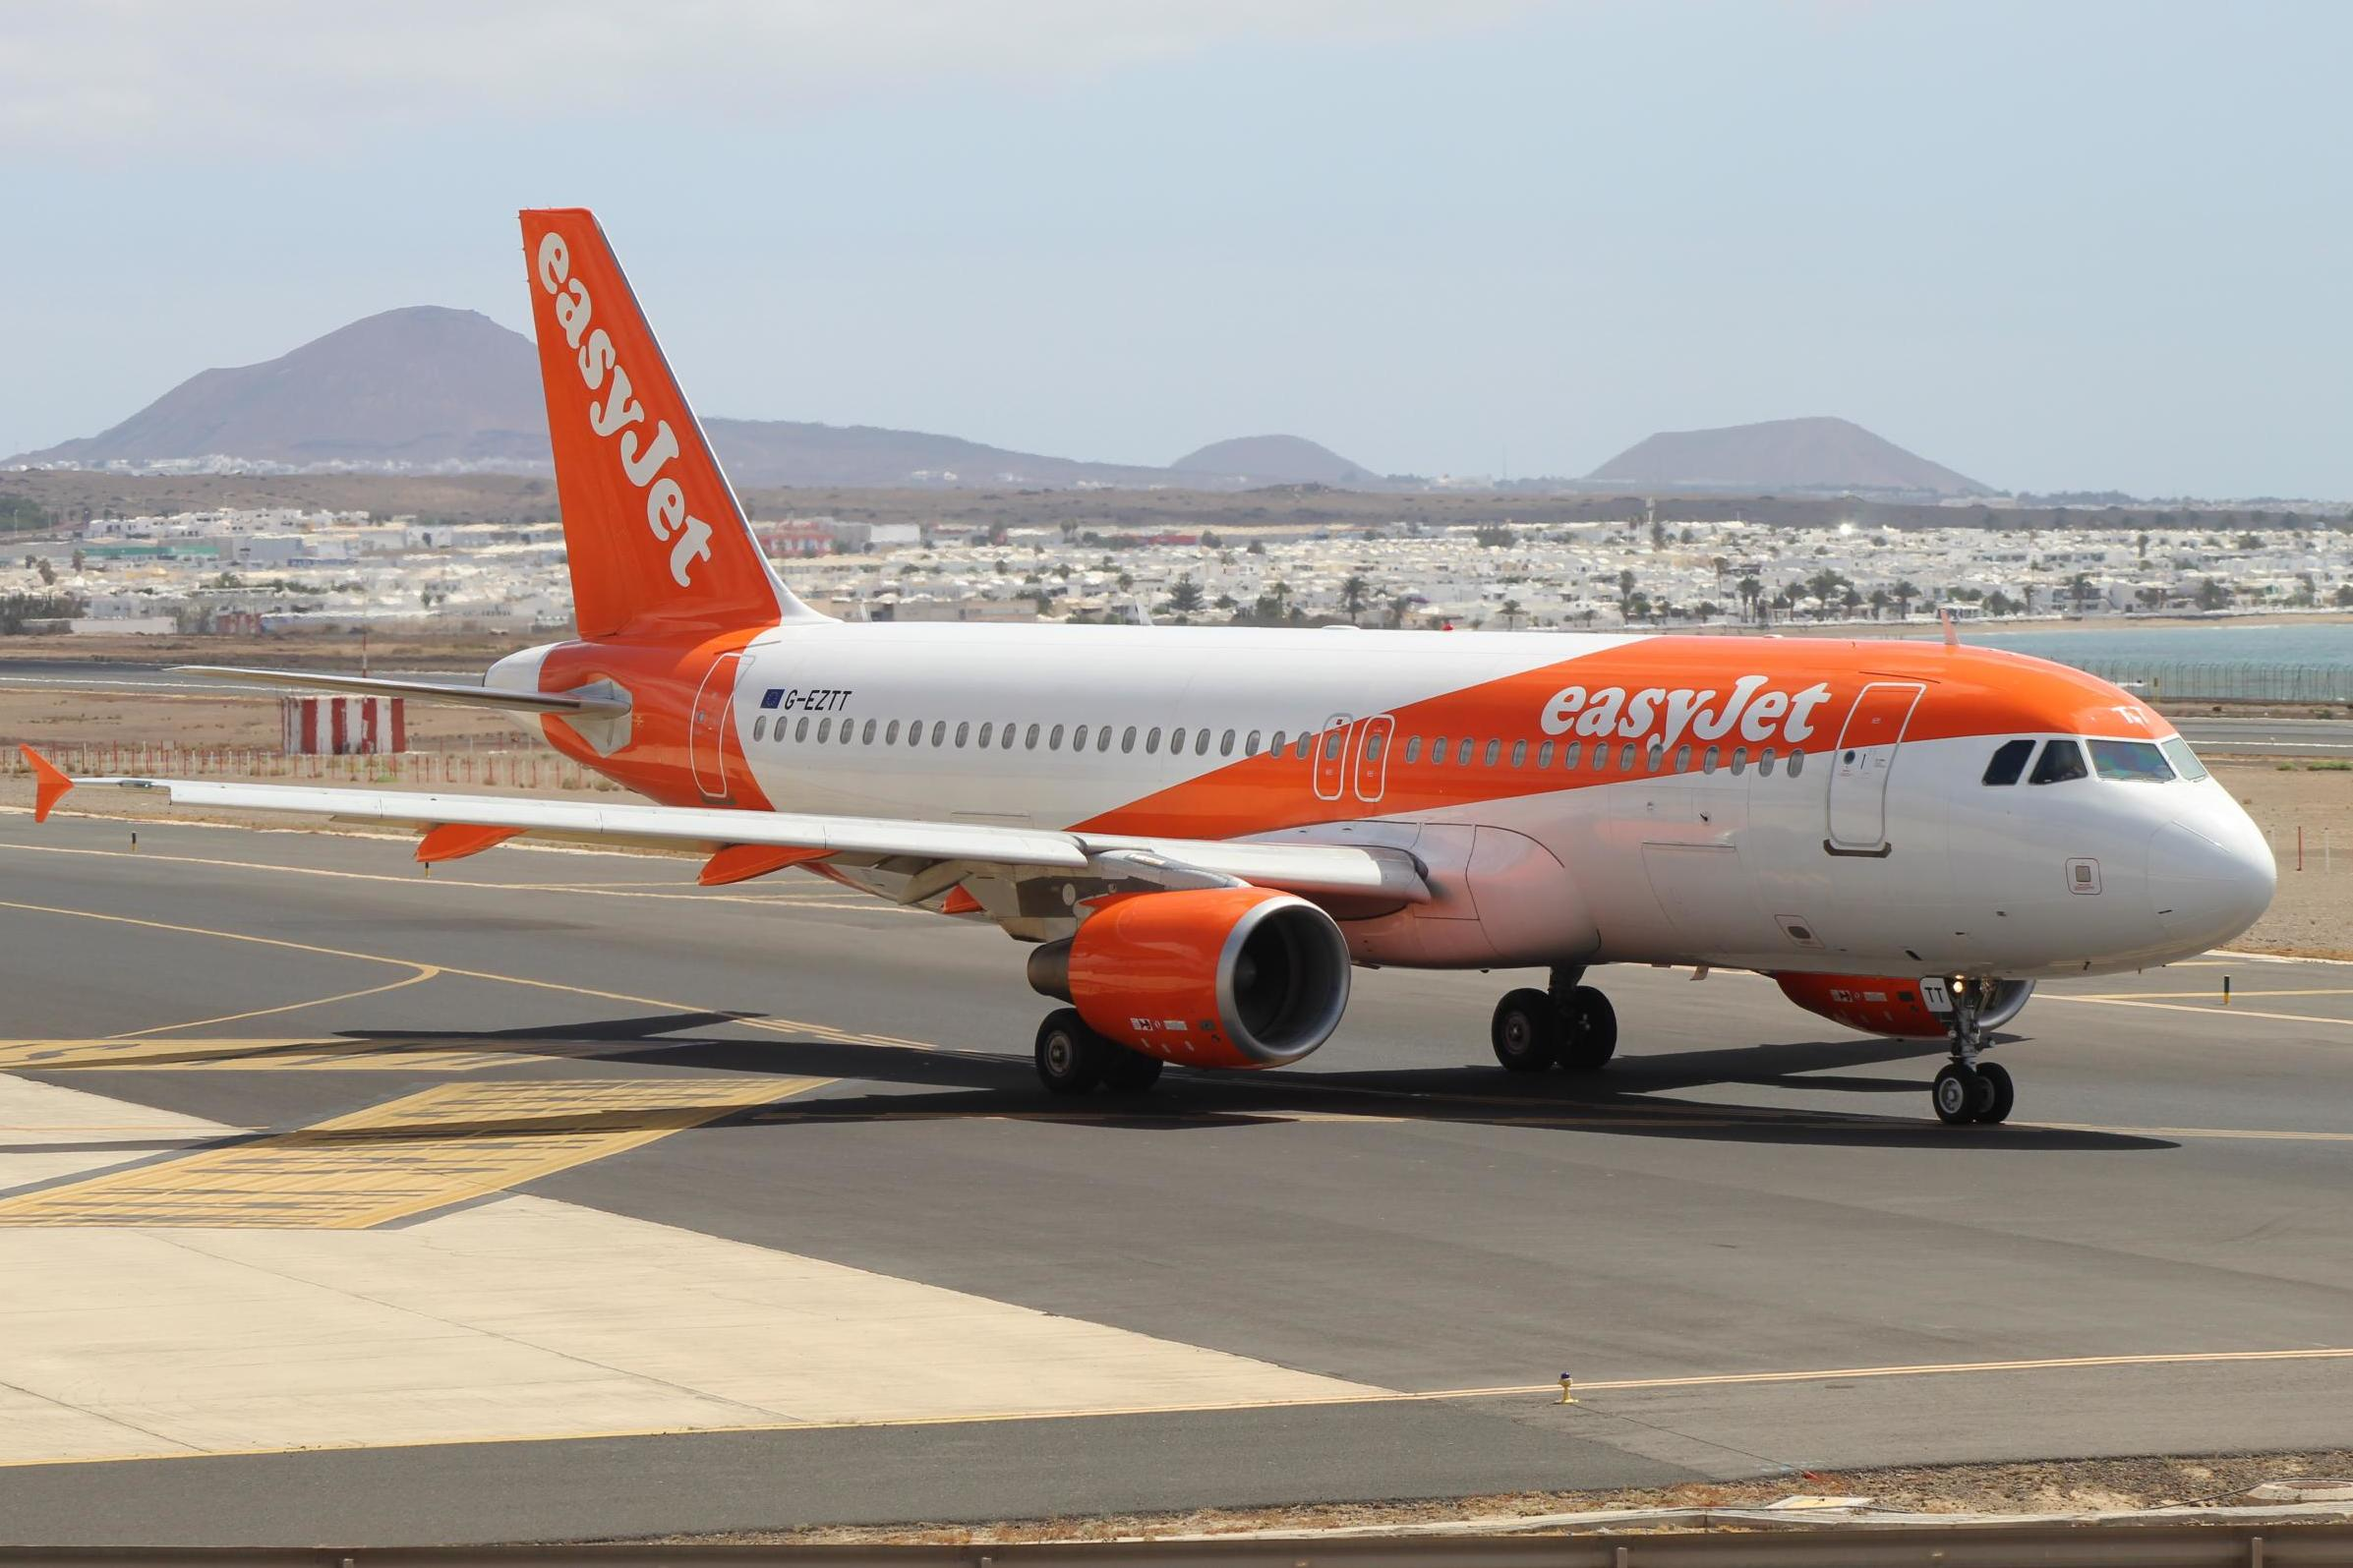 EasyJet will run out of money by August if Airbus order goes ahead, founder warns